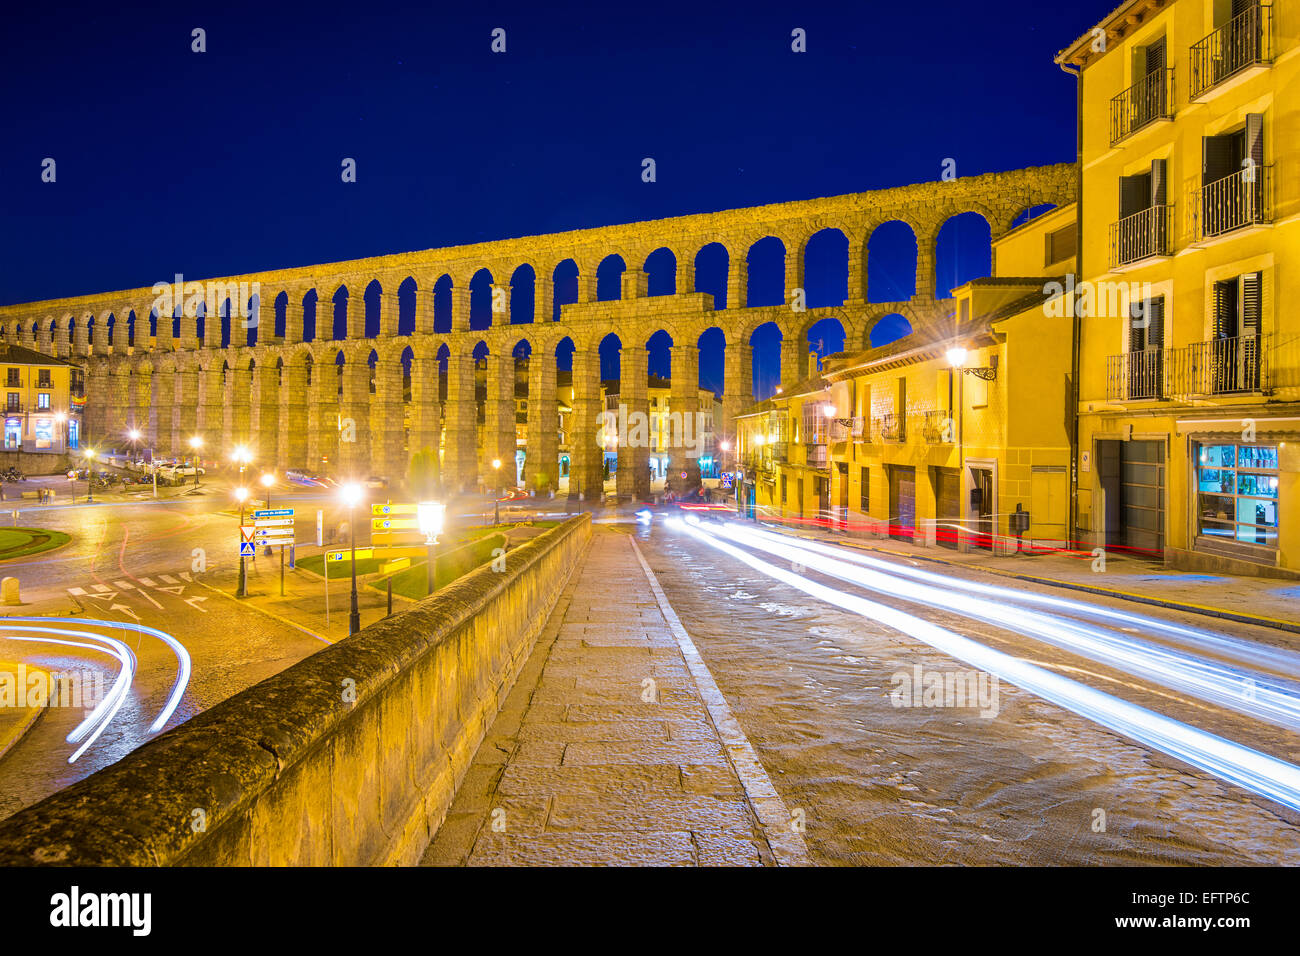 Segovia, Spain old town view at the ancient Roman aqueduct. - Stock Image